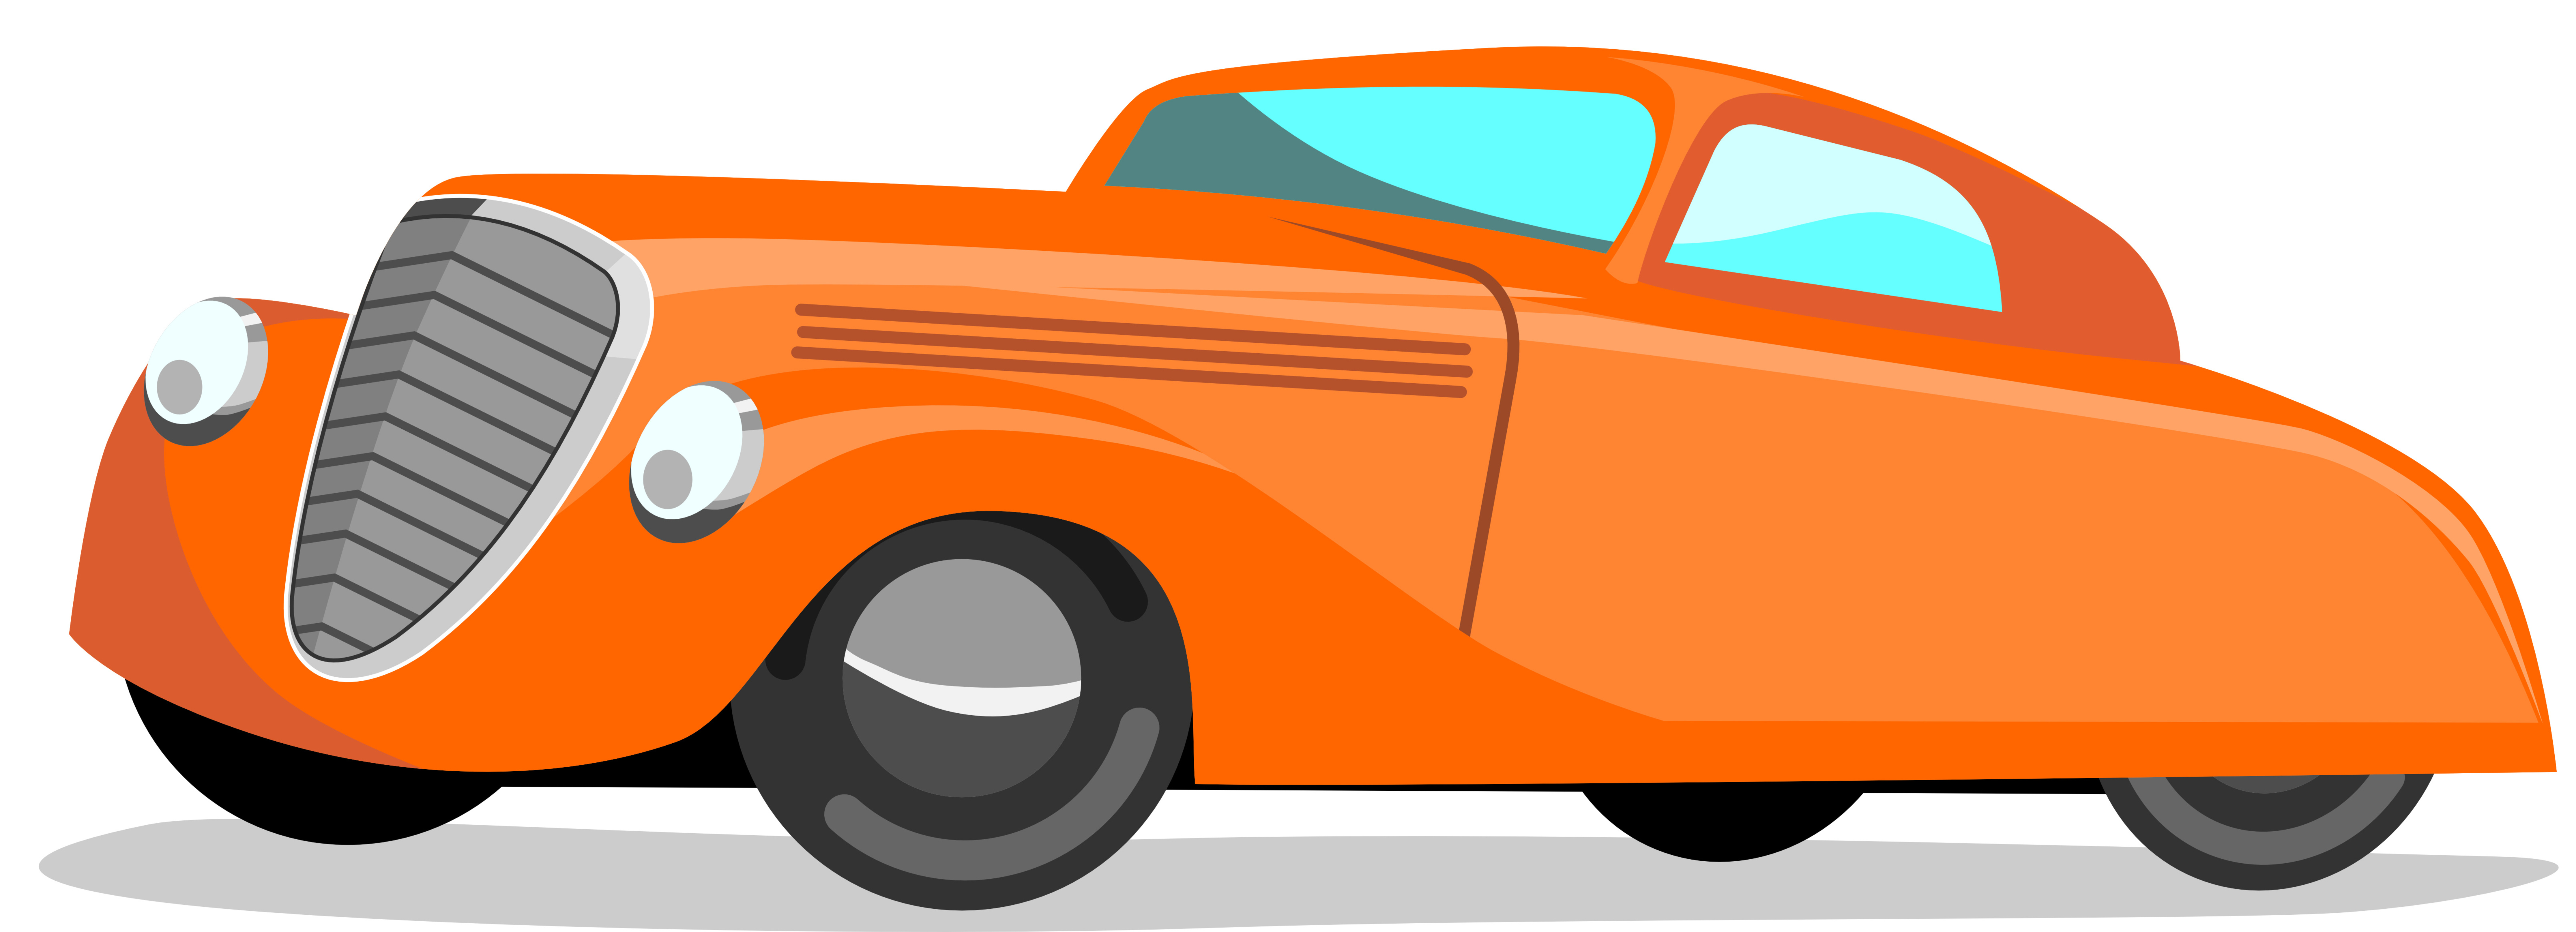 Fort clipart old Car Fort Cartoon Collins Clip